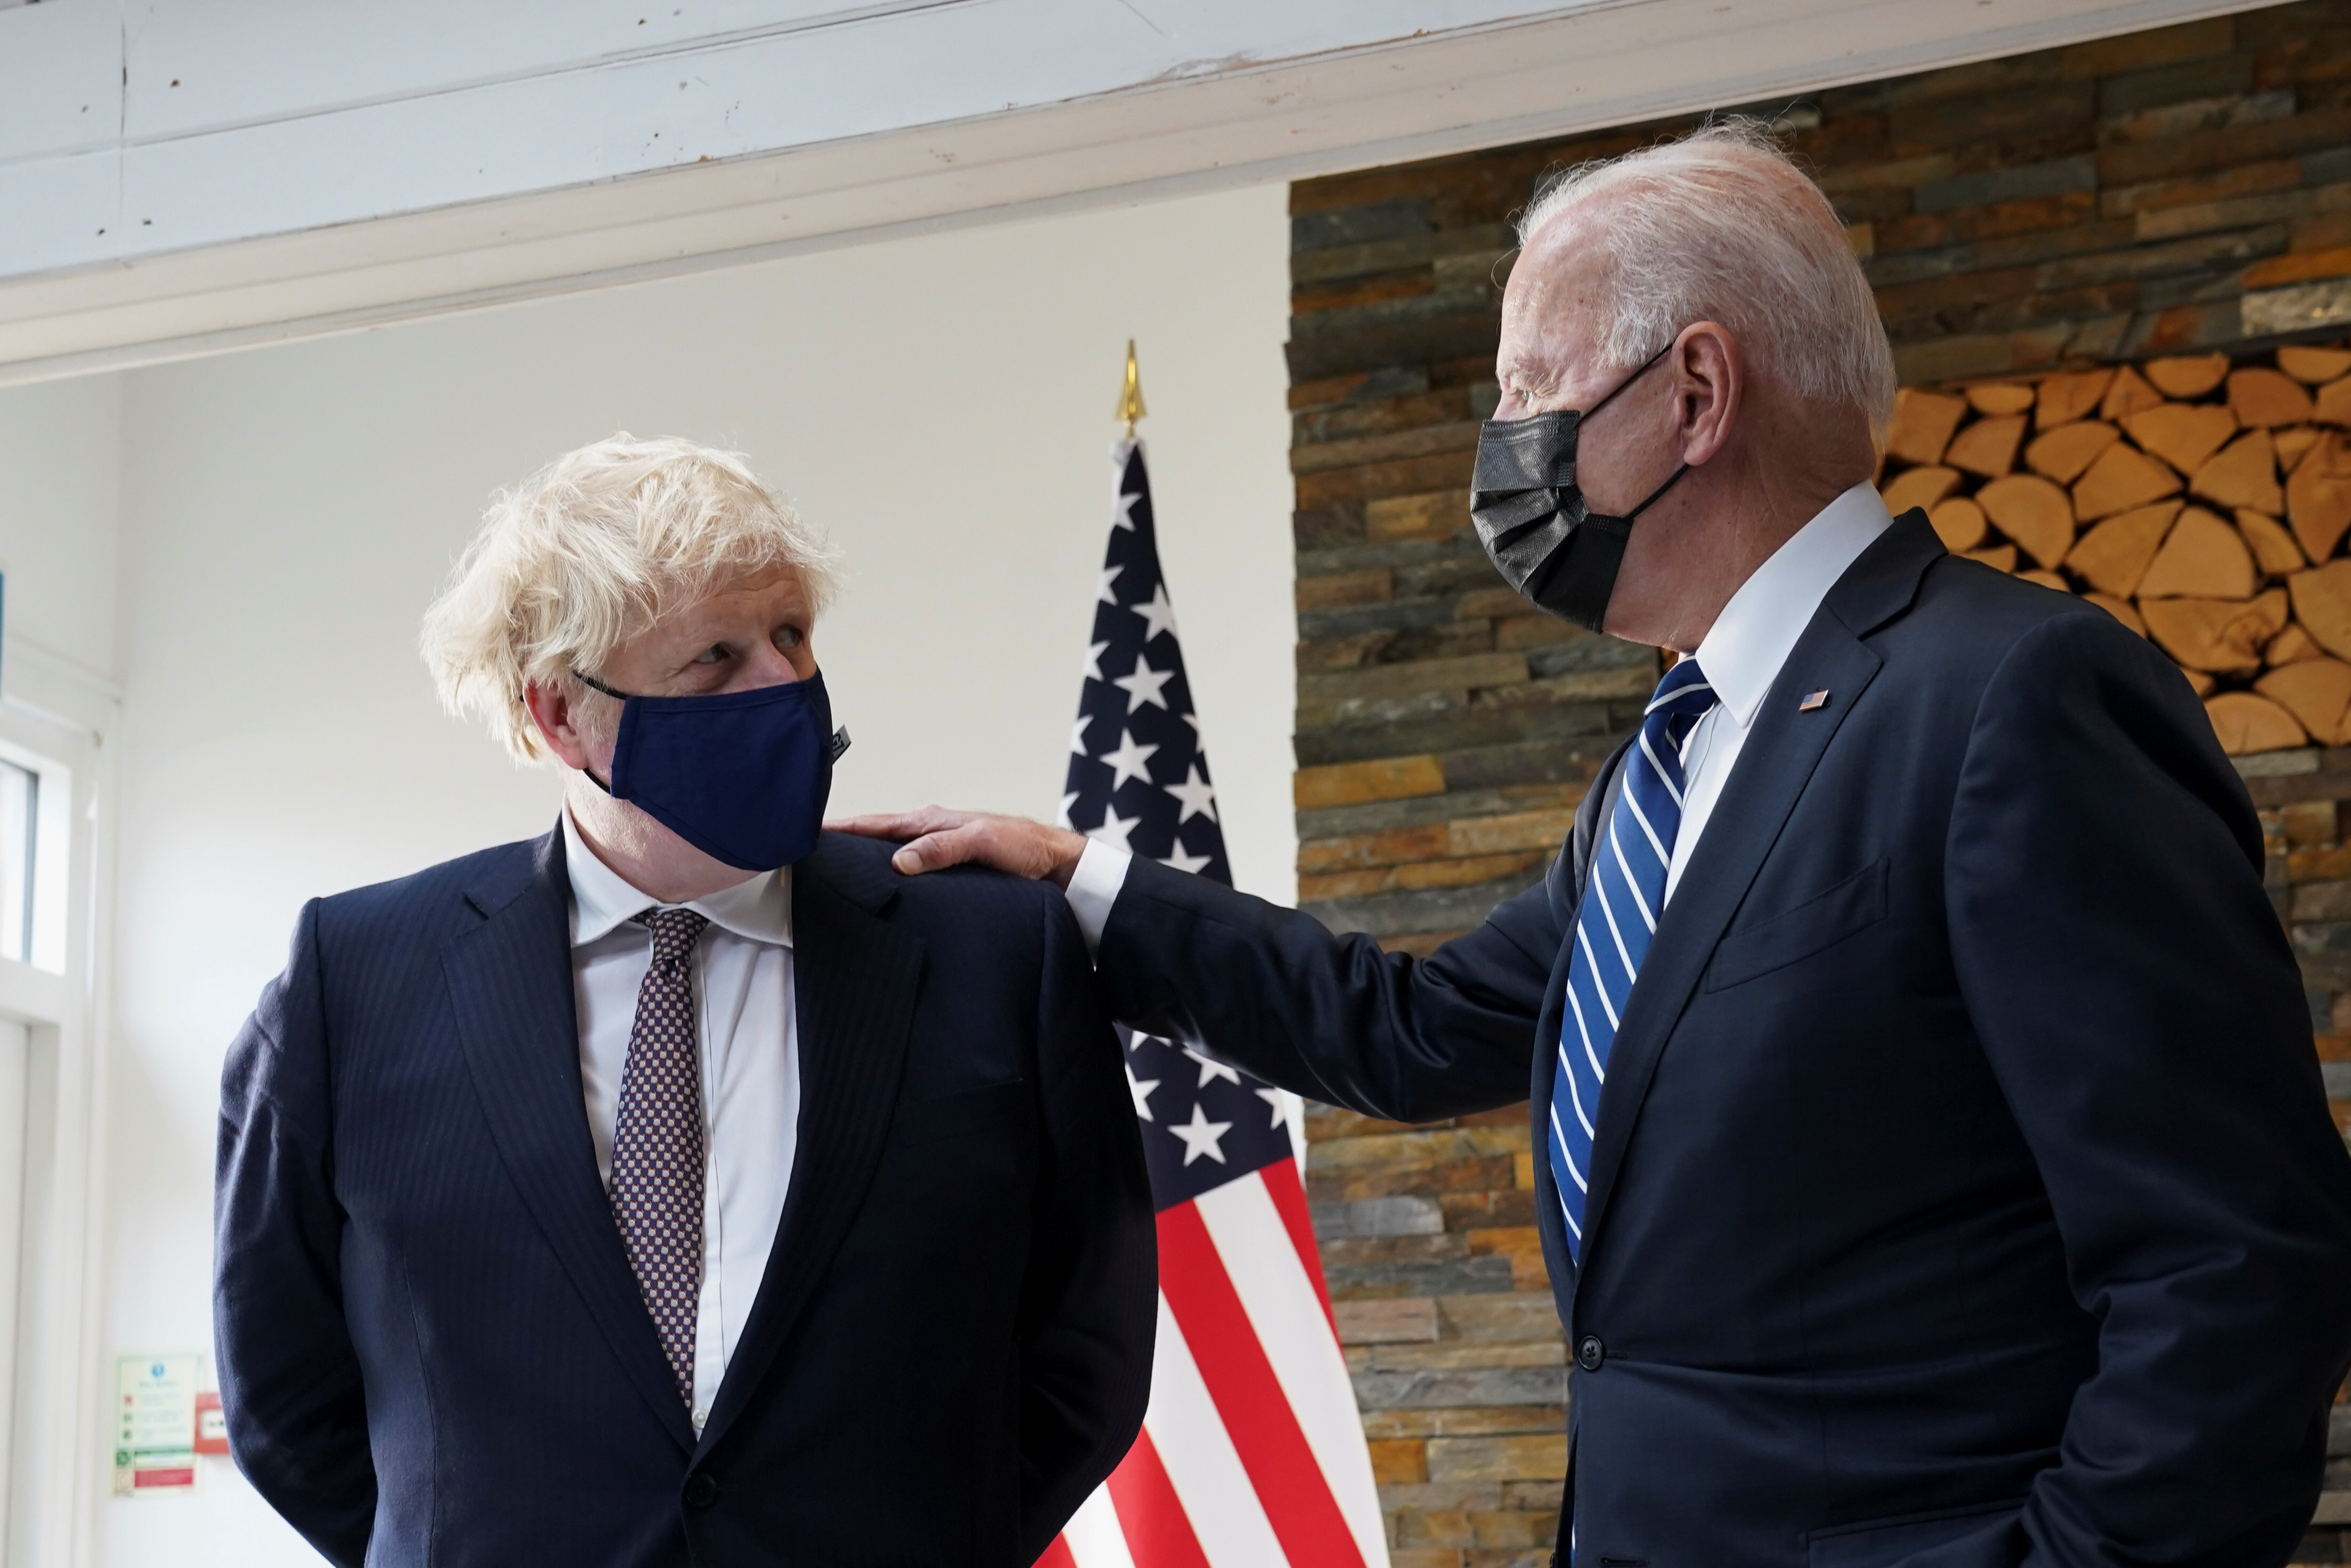 U.S. President Joe Biden speaks with Britain's Prime Minister Boris Johnson, as they look at historical documents and artefacts relating to the Atlantic Charter during their meeting, at Carbis Bay Hotel, Carbis Bay, Cornwall, Britain June 10, 2021 REUTERS/Kevin Lamarque